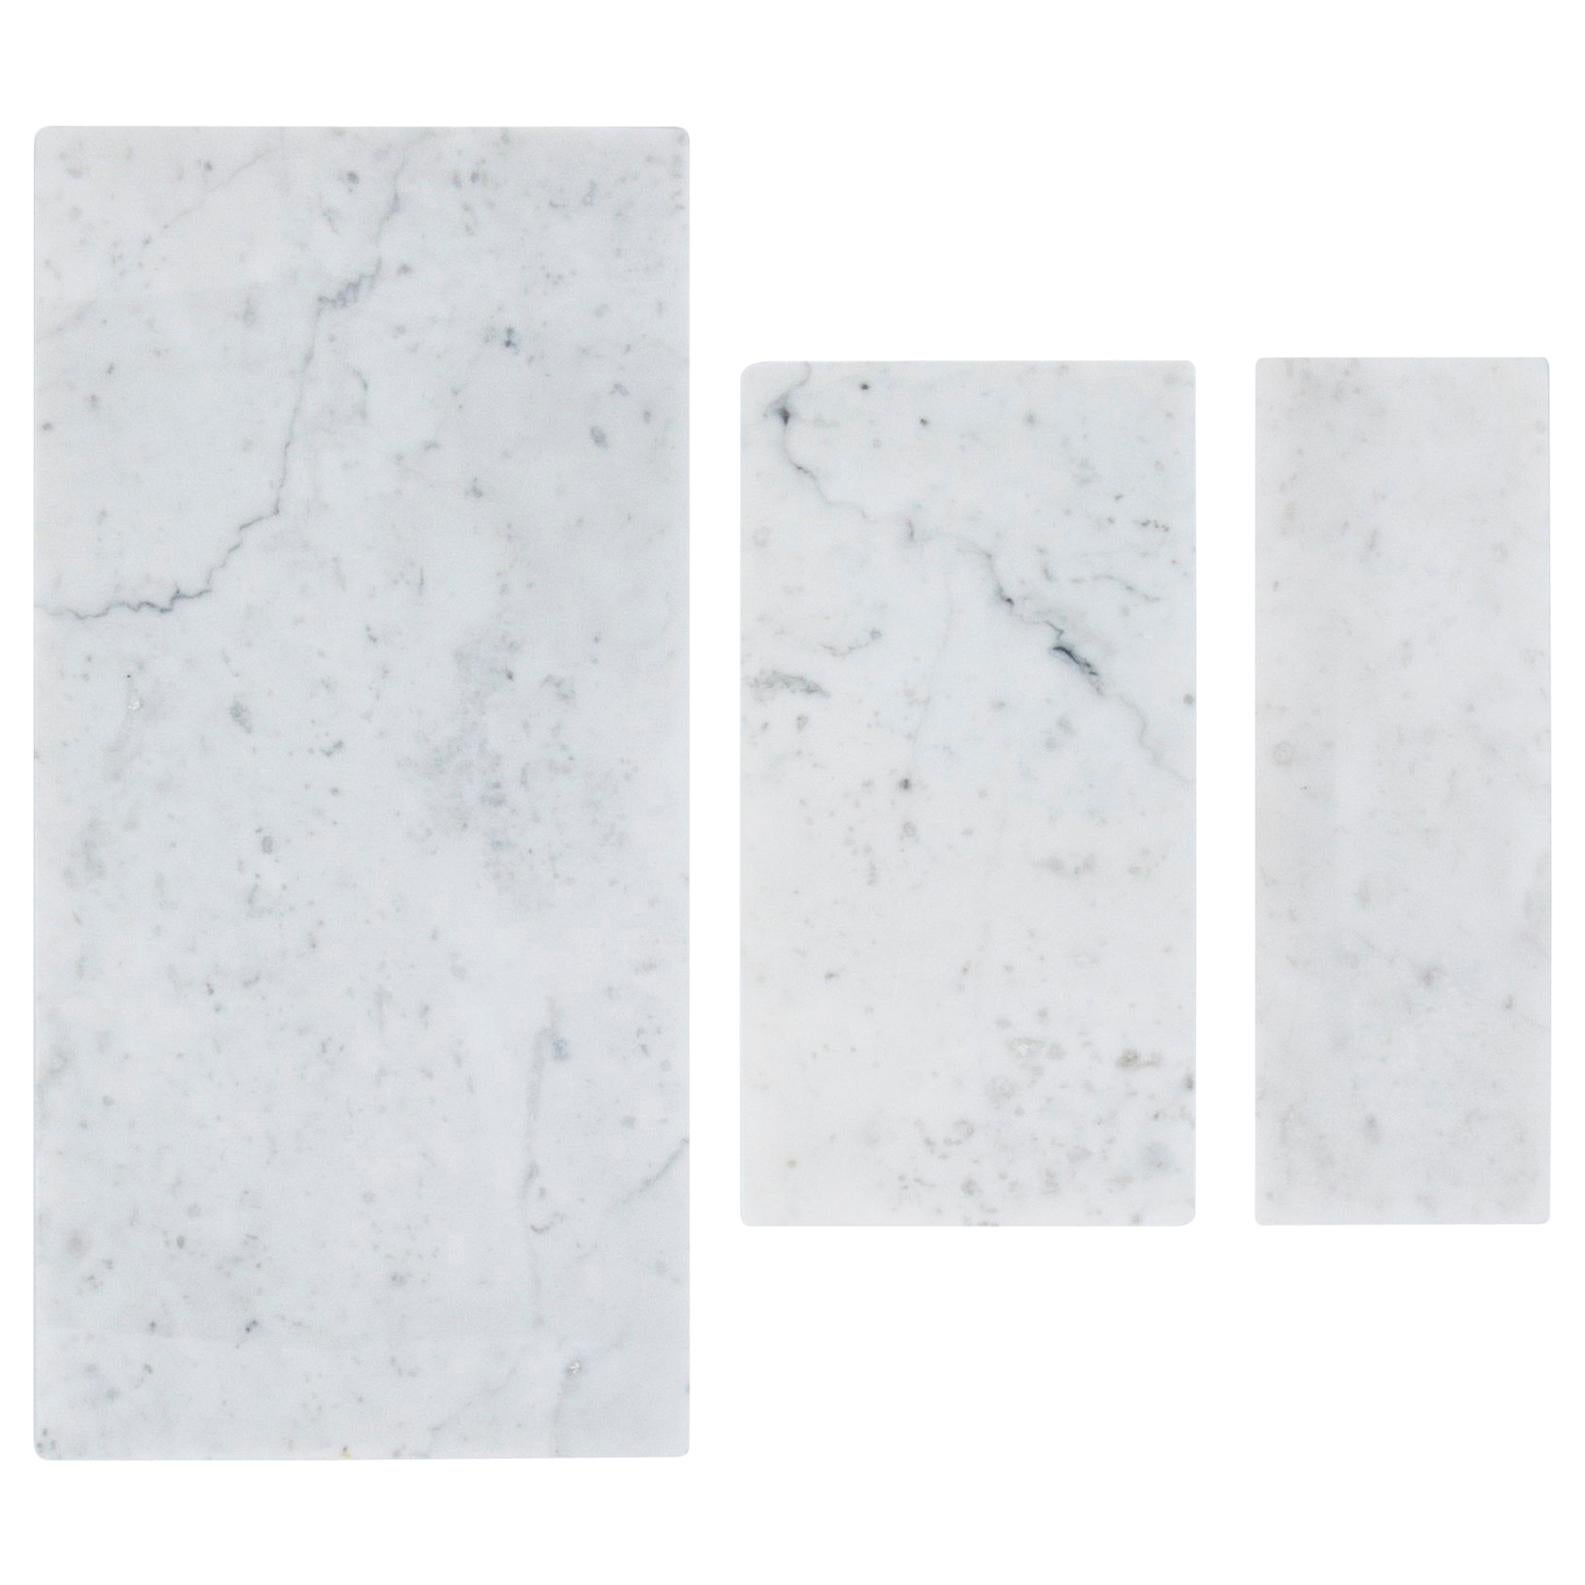 Set of 3 Canapè / Cheese Plates in White Carrara Marble